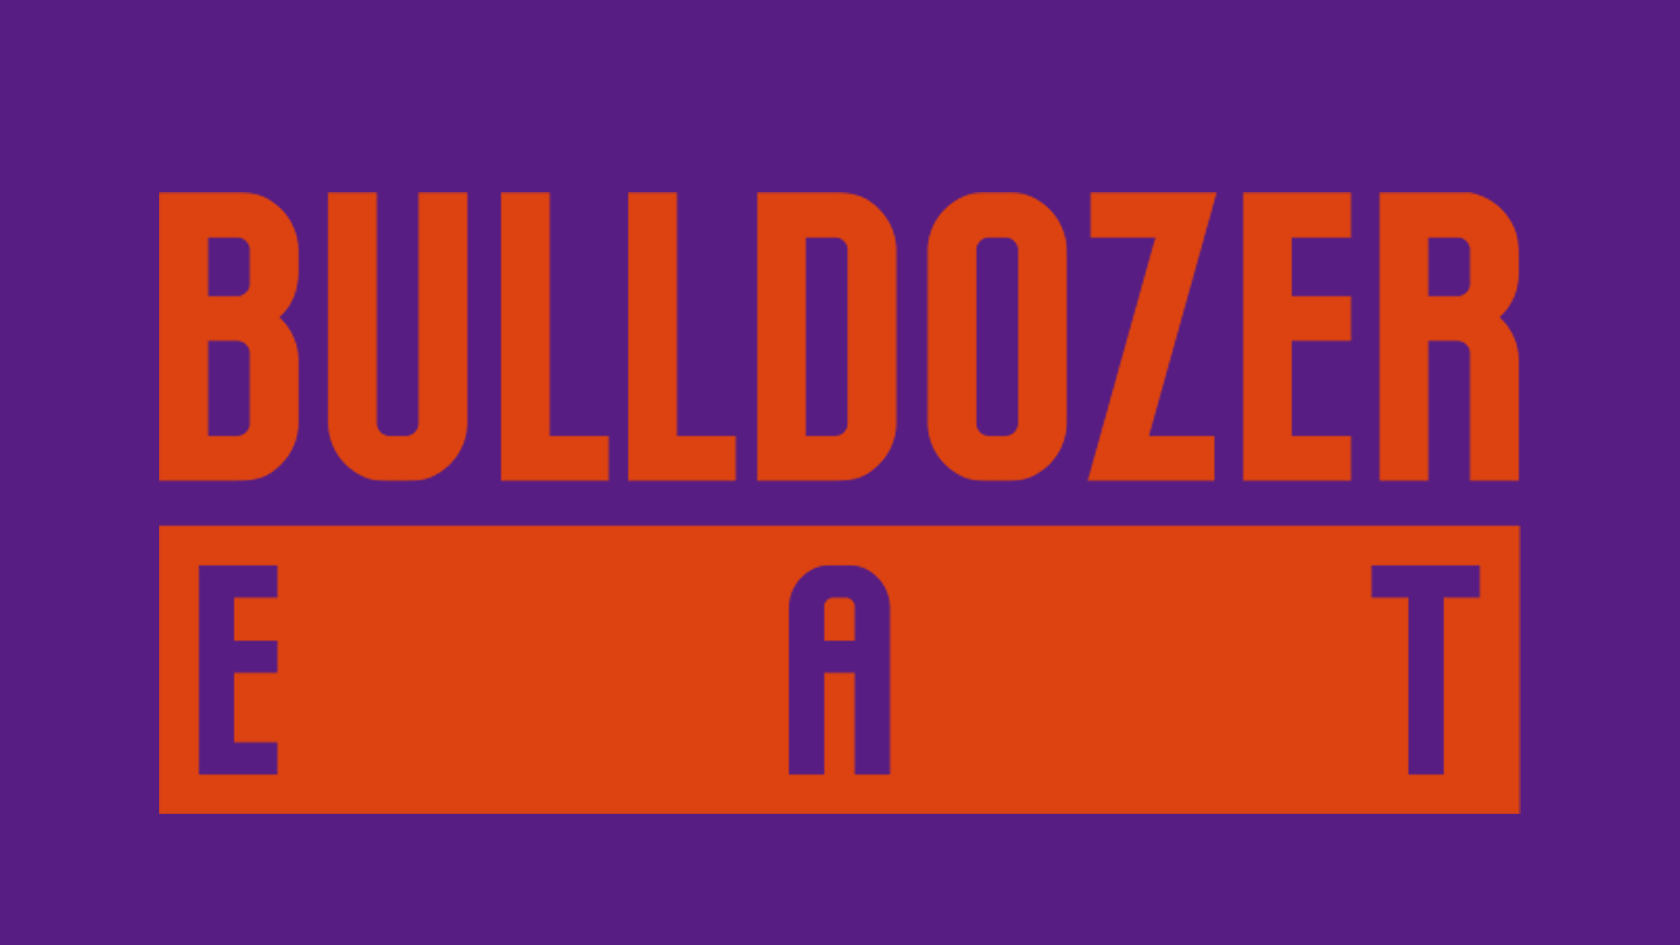 BULLDOZER EAT